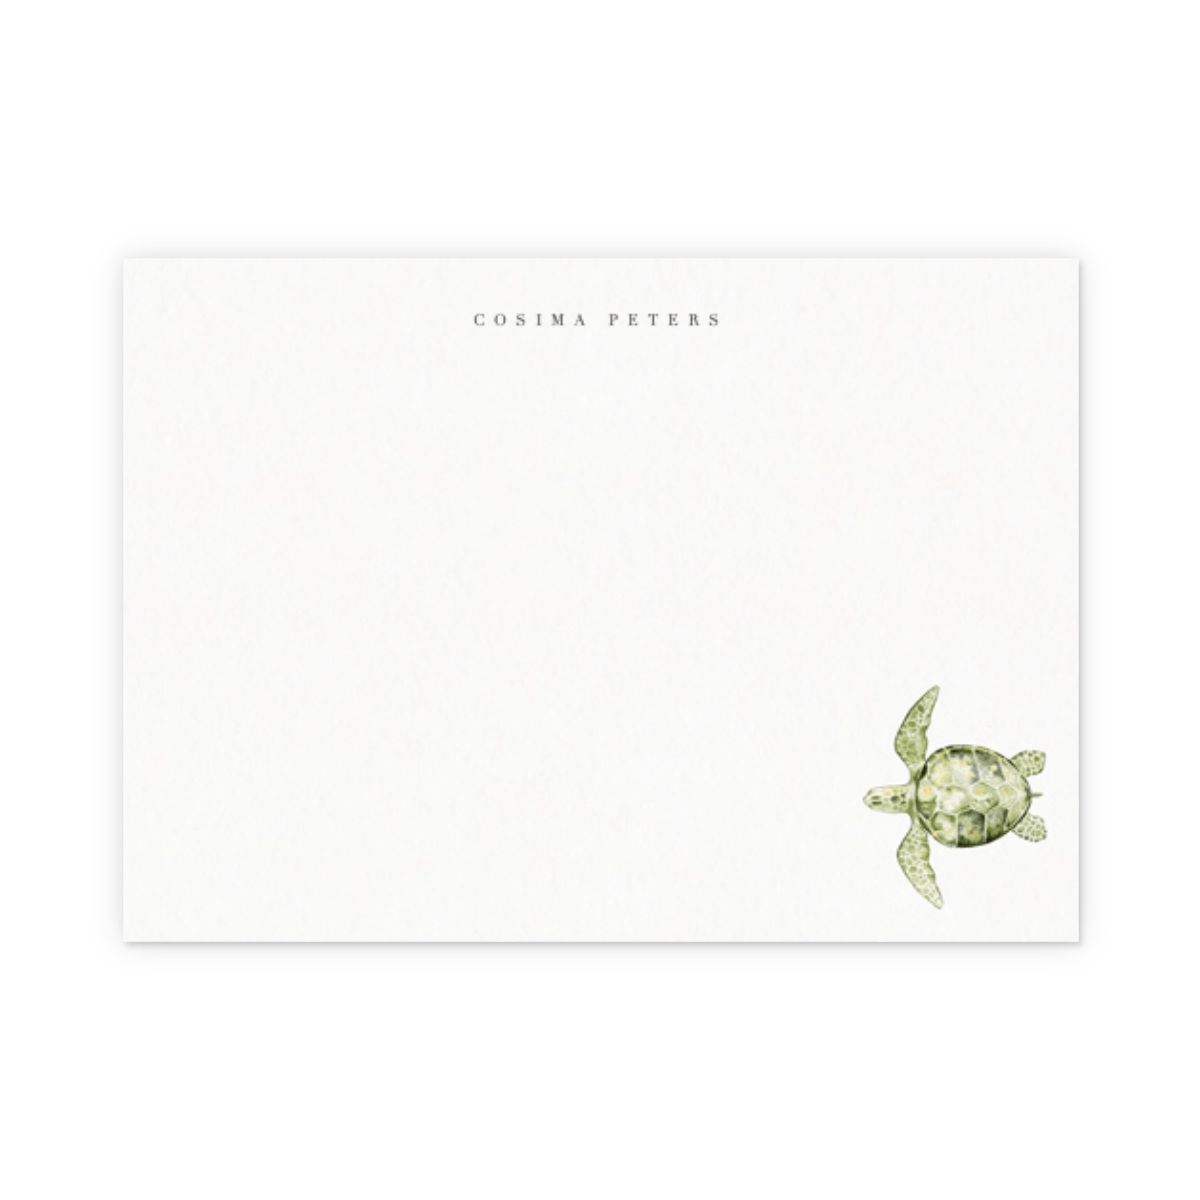 Https%3a%2f%2fwww.papier.com%2fproduct image%2f45040%2f10%2fsea turtle 969 vorderseite 1534930474.png?ixlib=rb 1.1